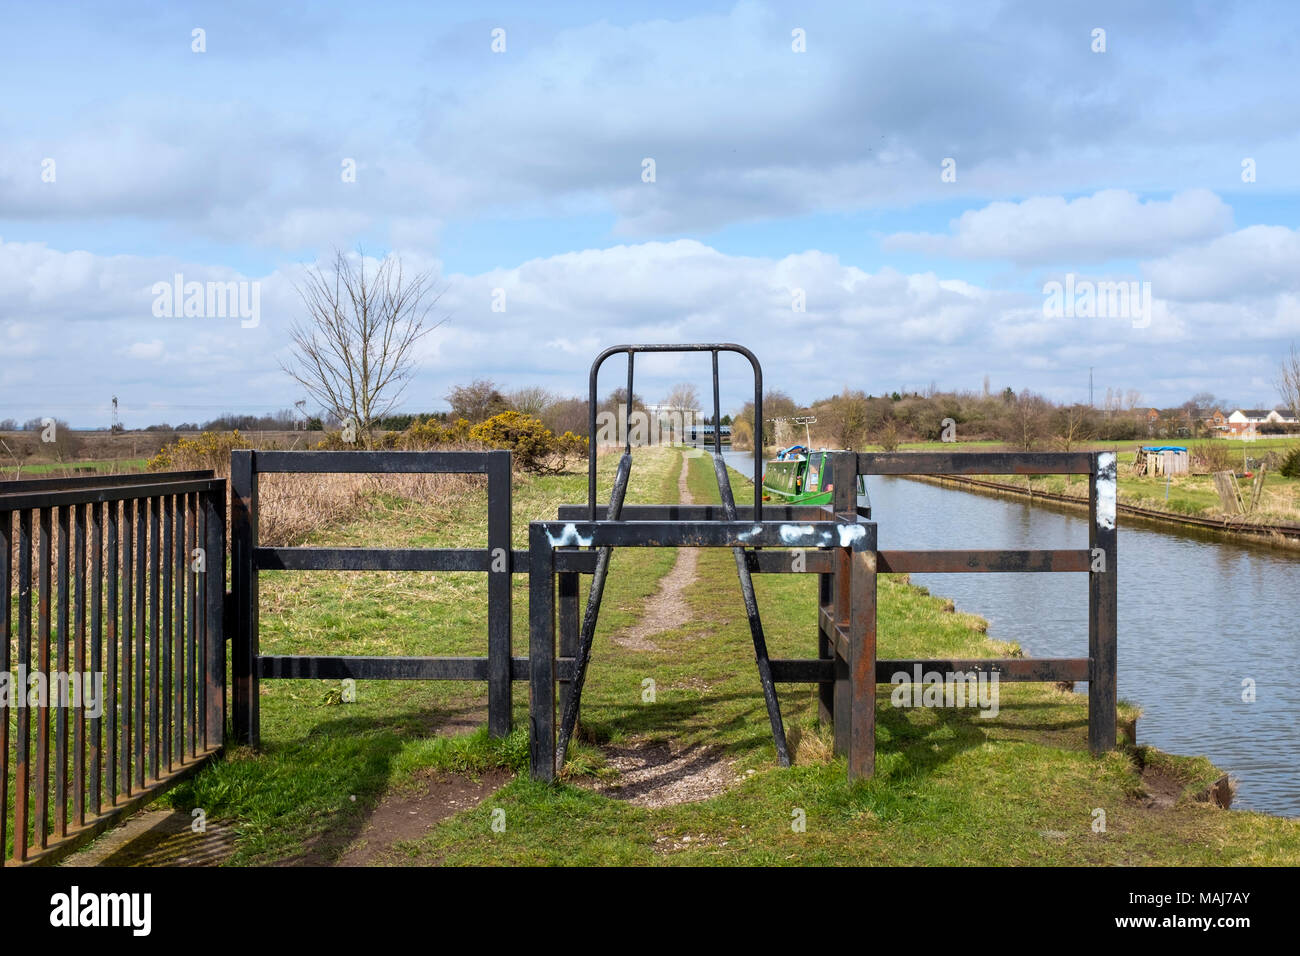 Barrier on towpath limiting vehicle and speed access next to the Trent and Mersey canal in Cheshire UK - Stock Image